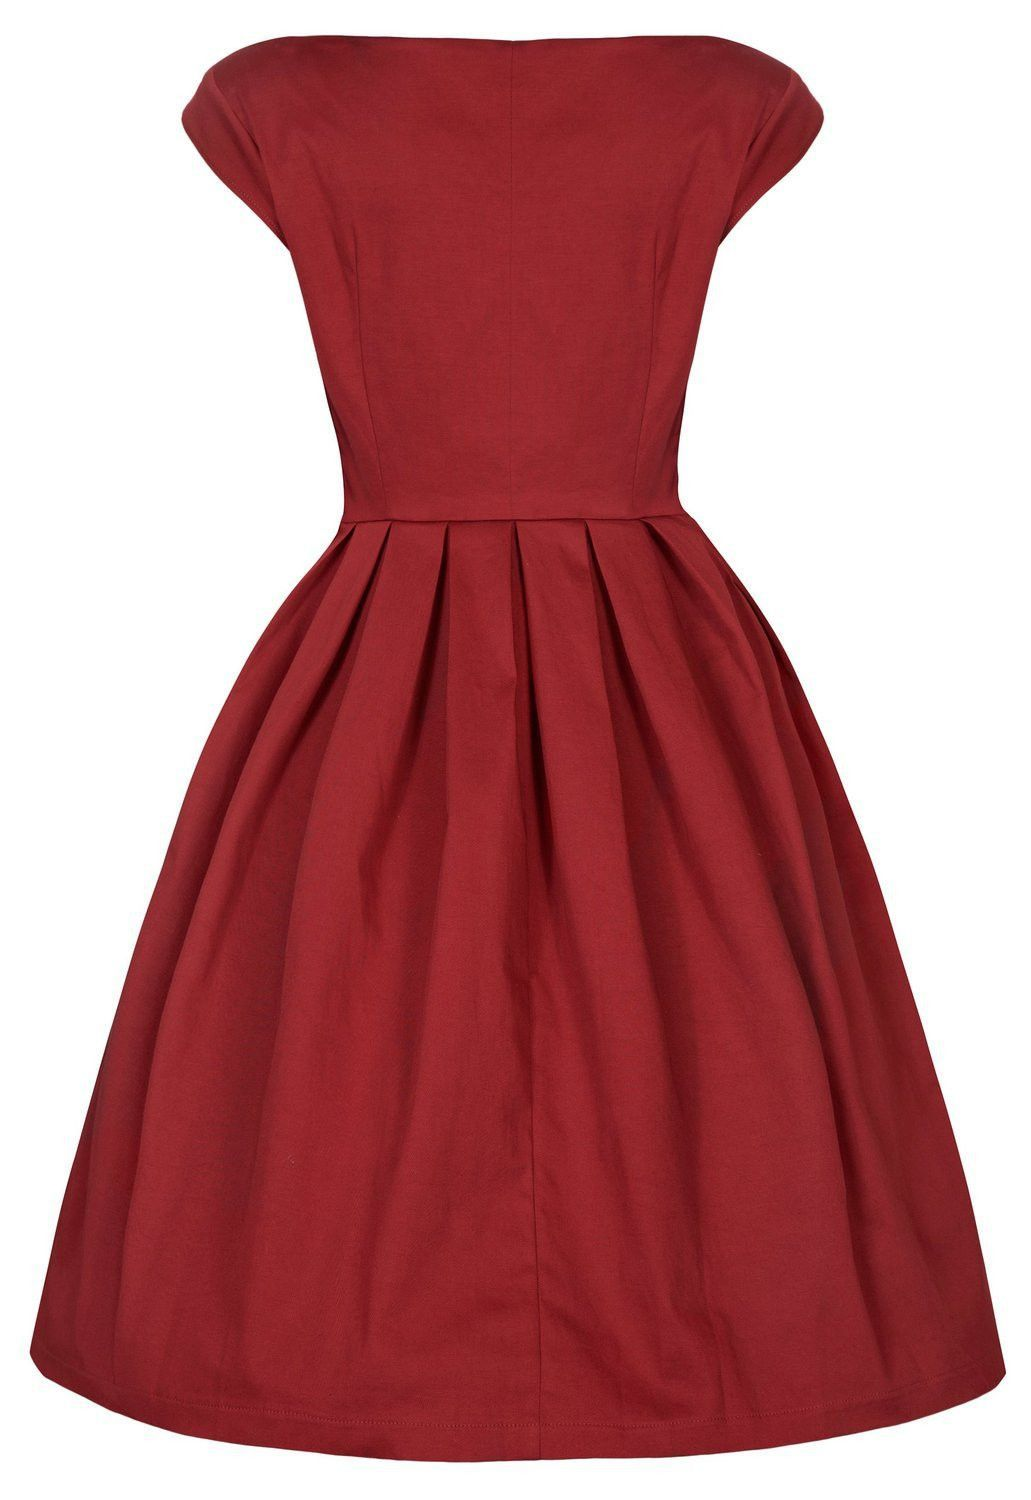 50+ Burgundy christmas party dress trends